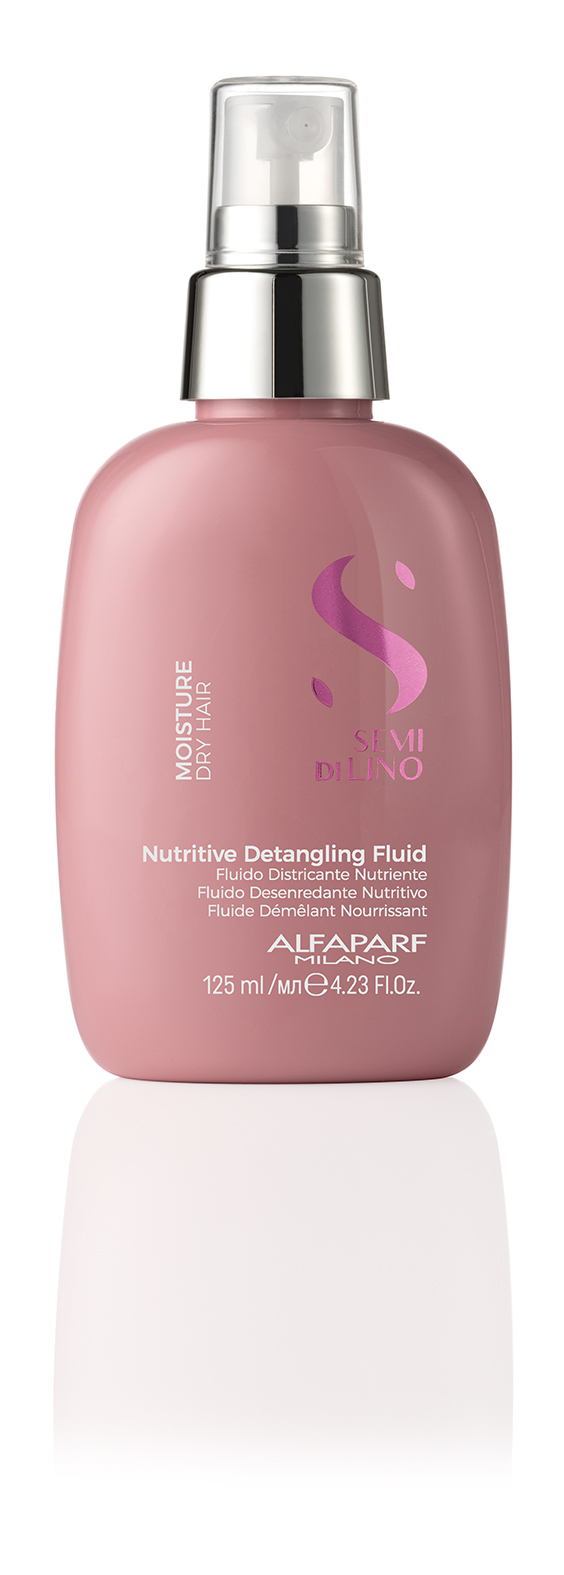 NUTRITIVE DETANGLING FLUID    DESCRIPTION   Maximum combability without weighing down the hair Silkiness   FORMAT   Bottle 125ml